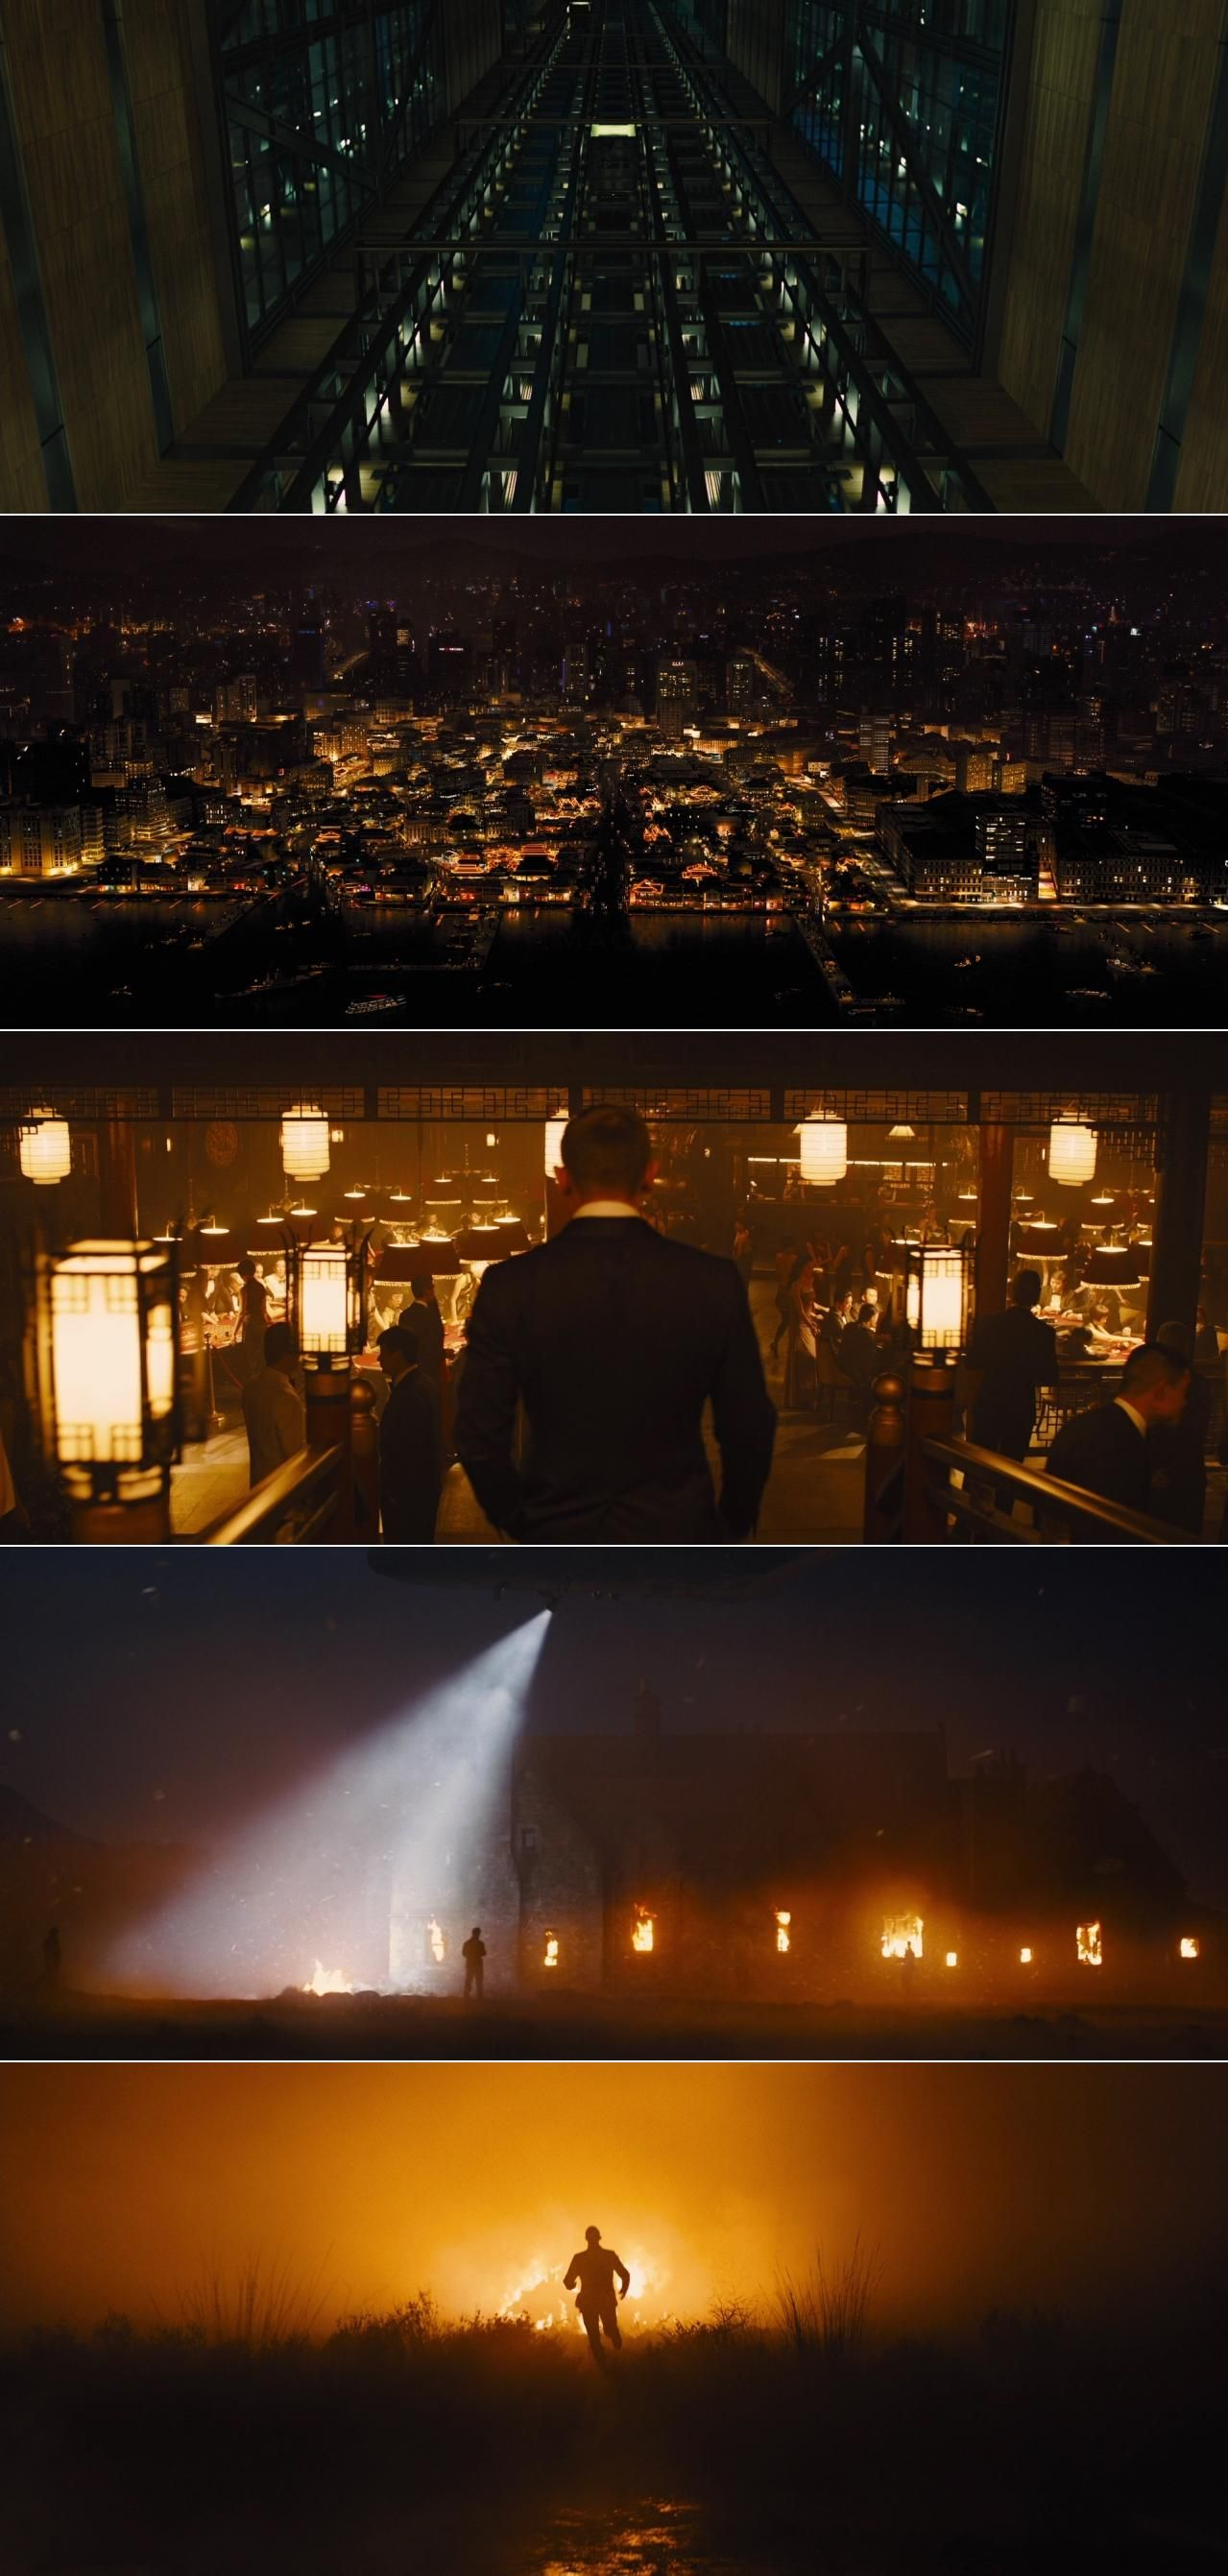 Skyfall (2012)   Cinematography by Roger Deakins   Directed by Sam Mendes